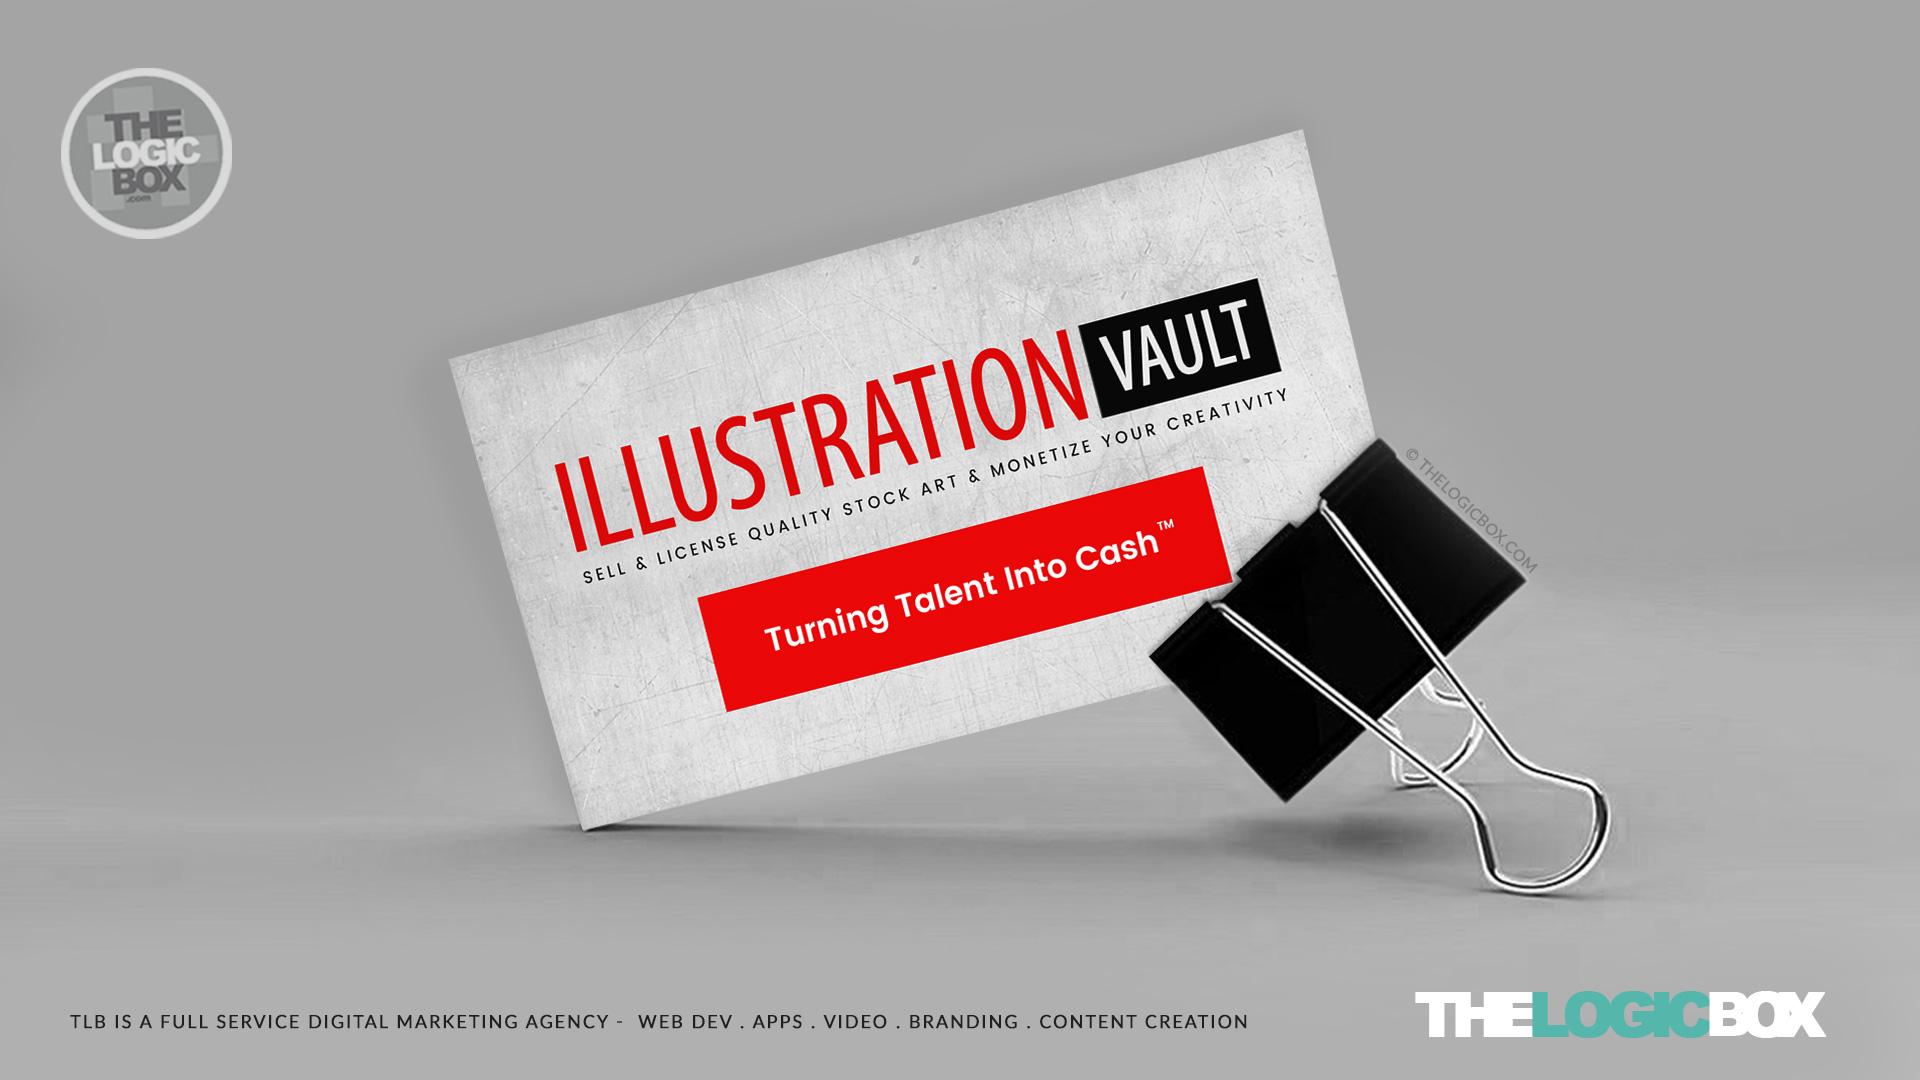 Business-Card-the-logic-box-agency-6-illustrationvault